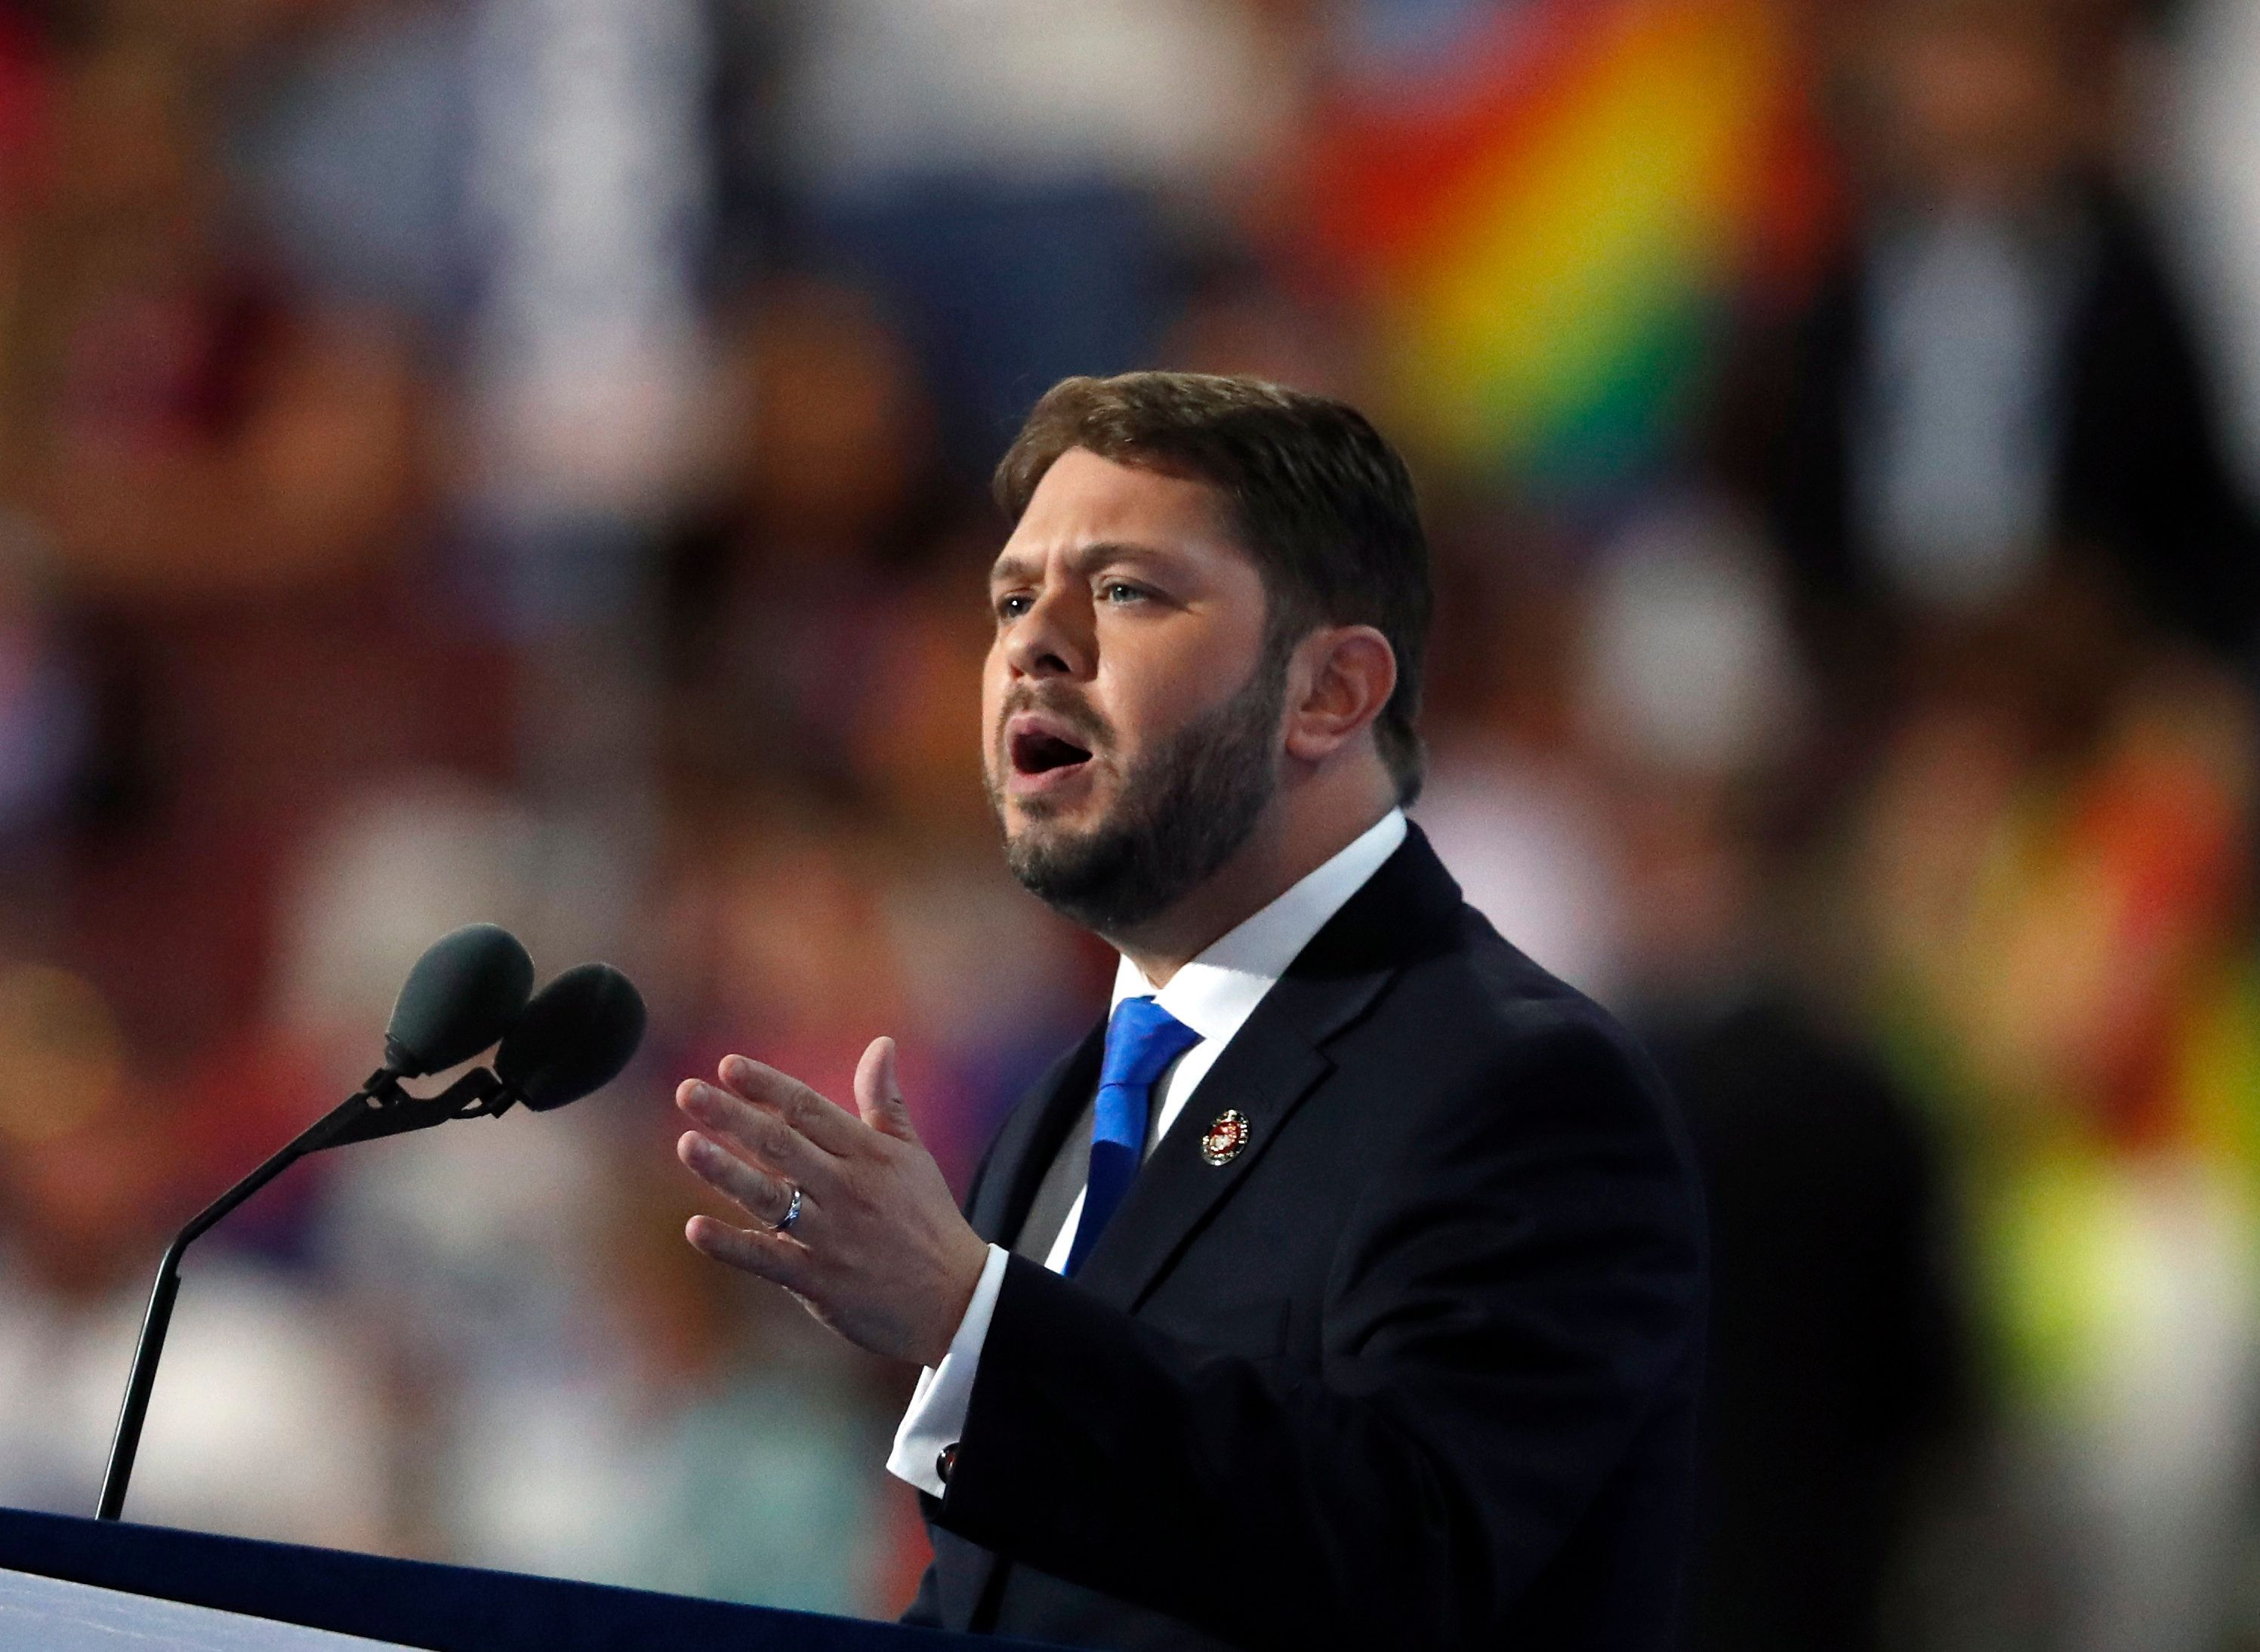 Rep. Ruben Gallego, D-Ariz., speaks during the third day of the Democratic National Convention in Philadelphia , Wednesday, July 27, 2016. (AP Photo/Paul Sancya)